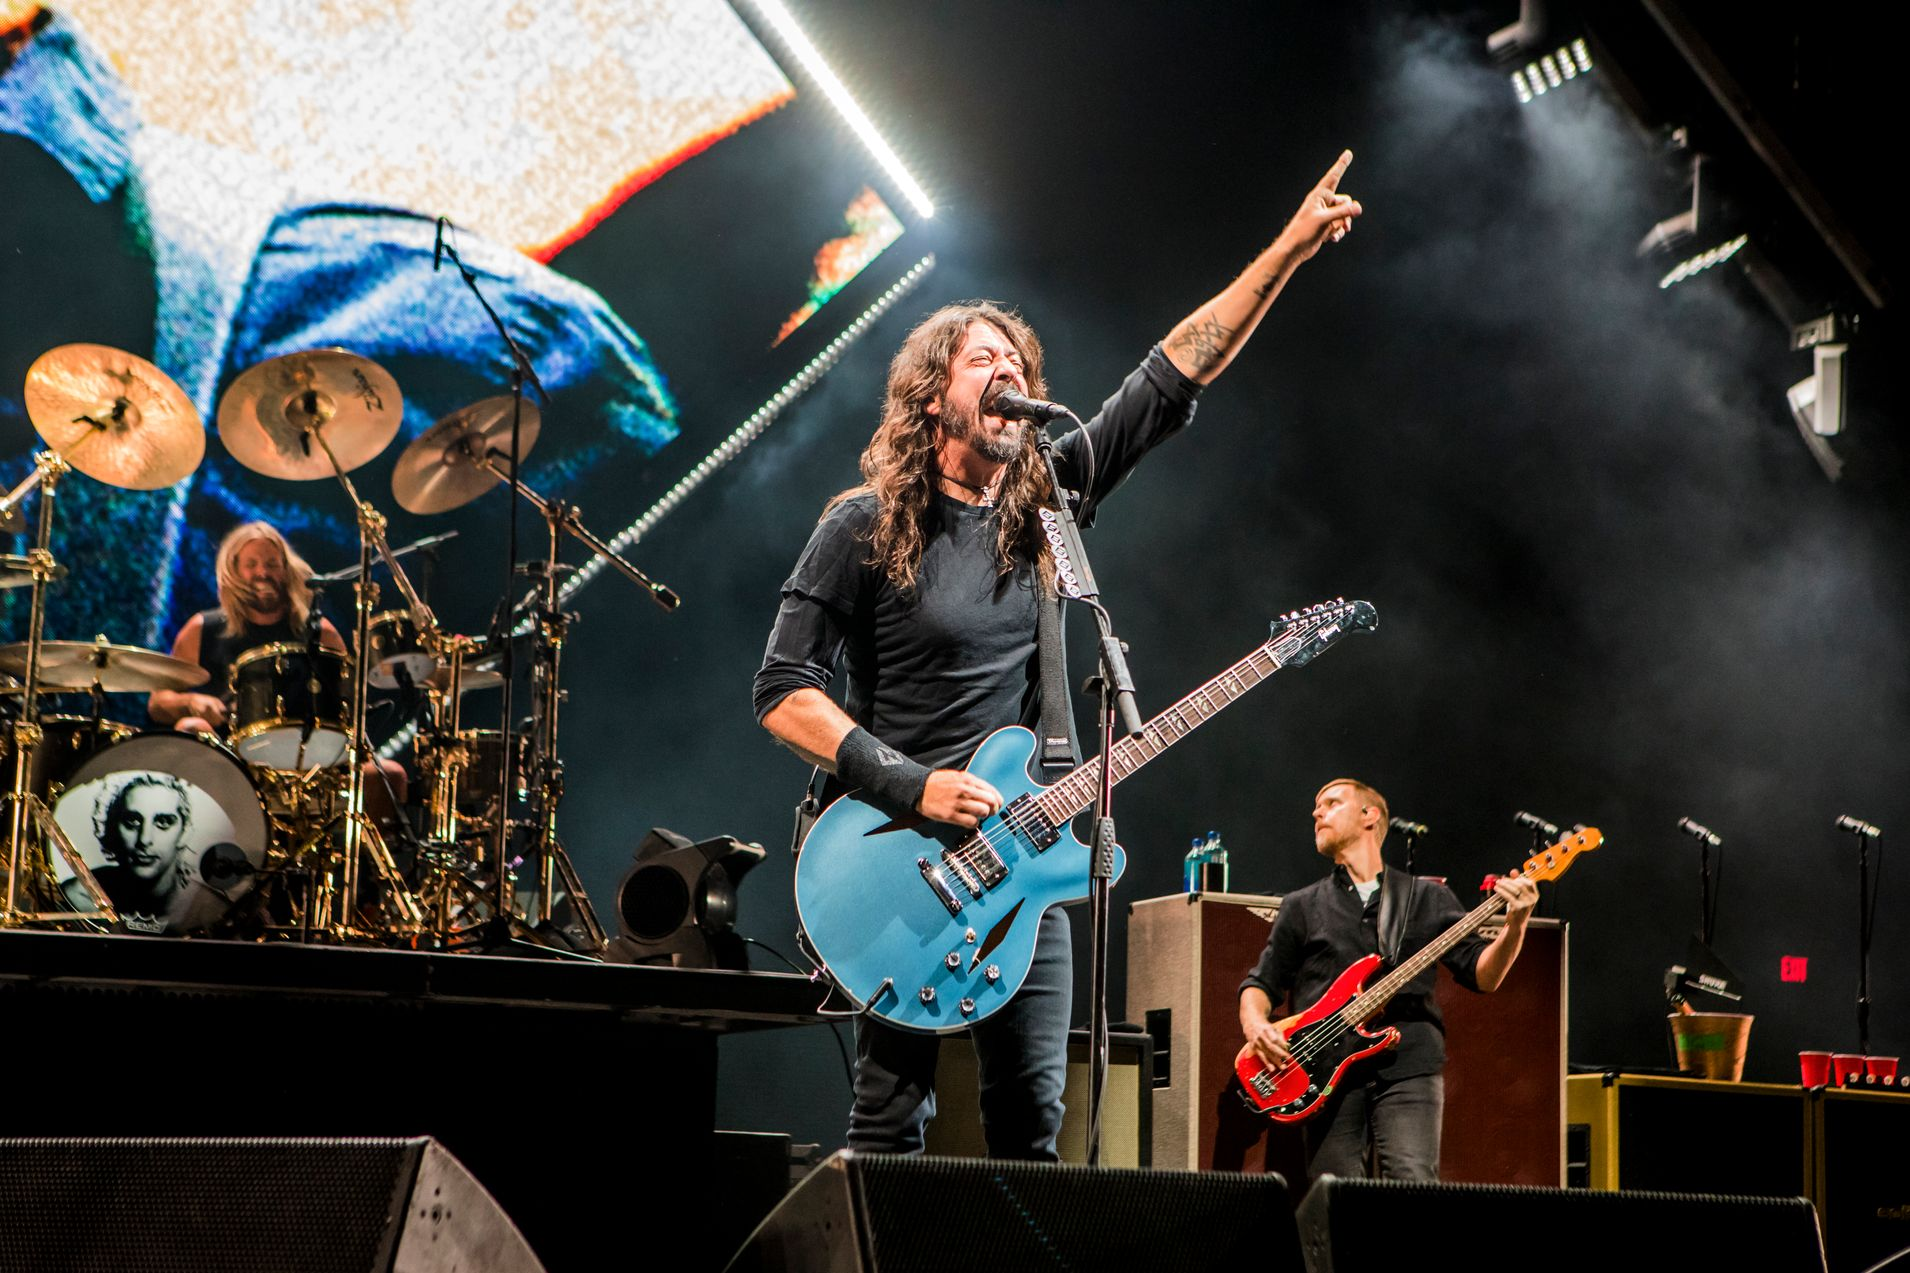 Dave Grohl of Foo Fighters Rocks Out at CalJam 2018! Photo Credit:  Andy Keilen